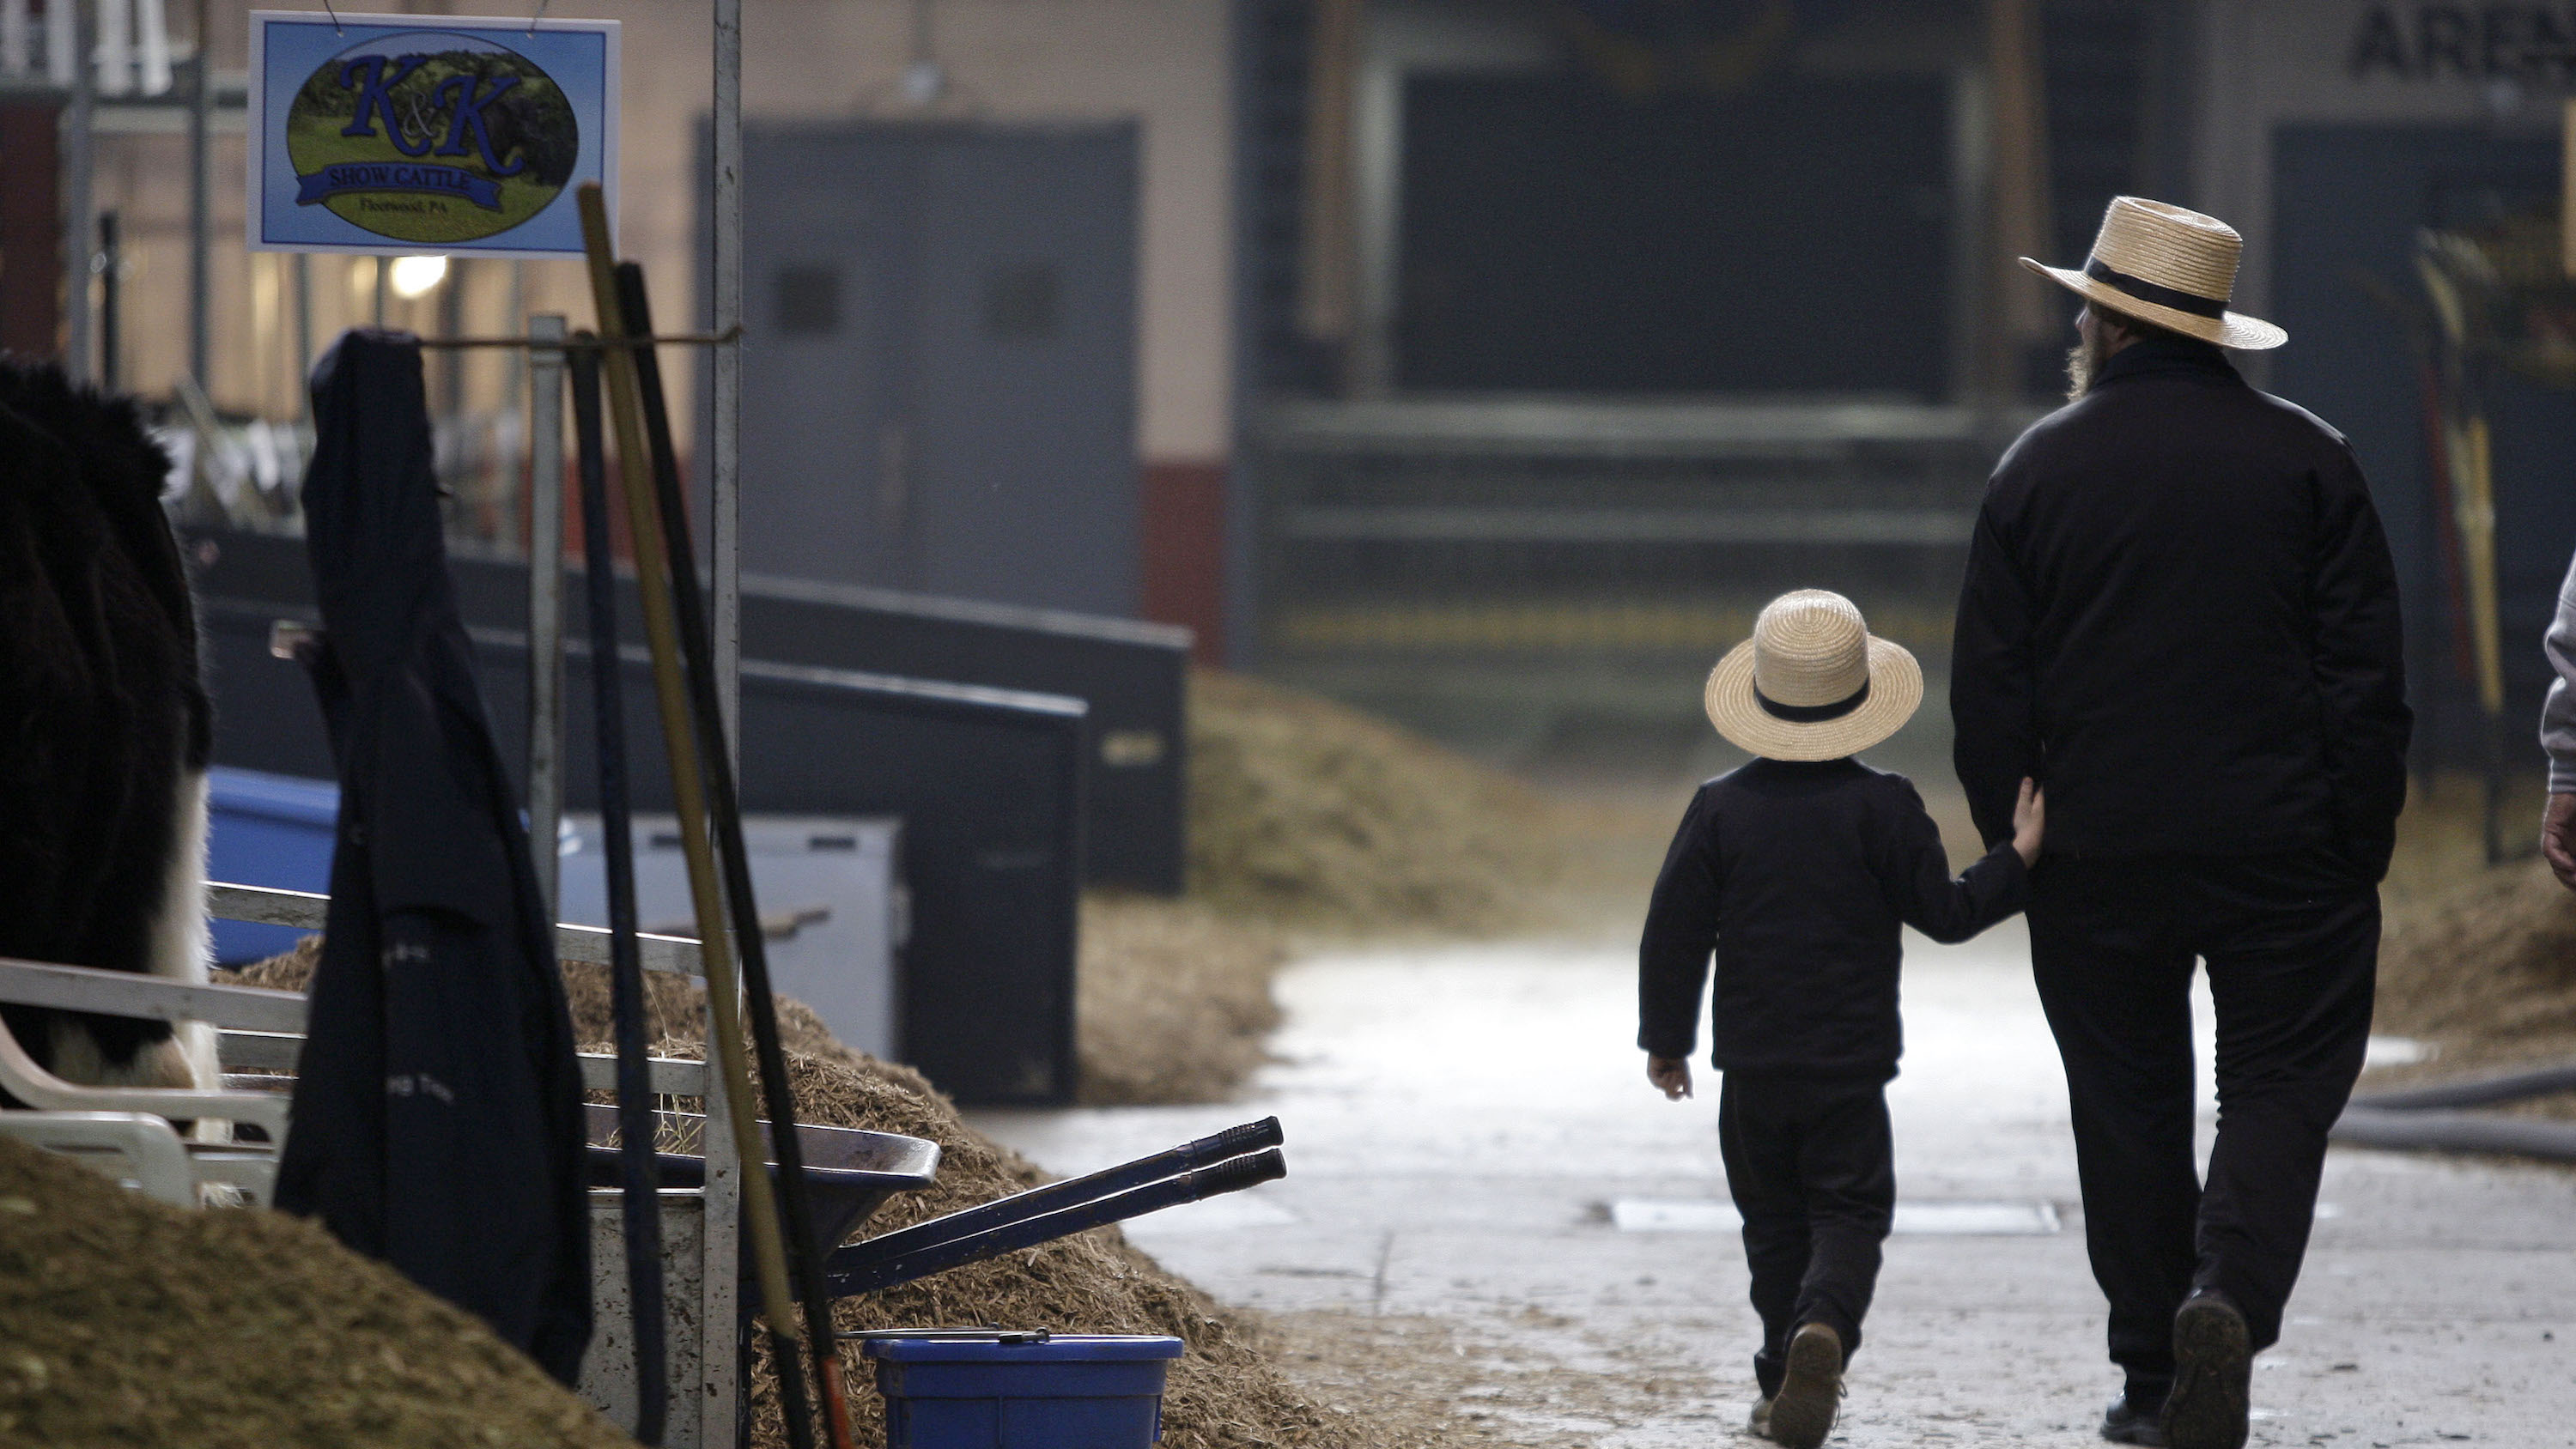 the amish understand a crucial thing about modern medicine that most